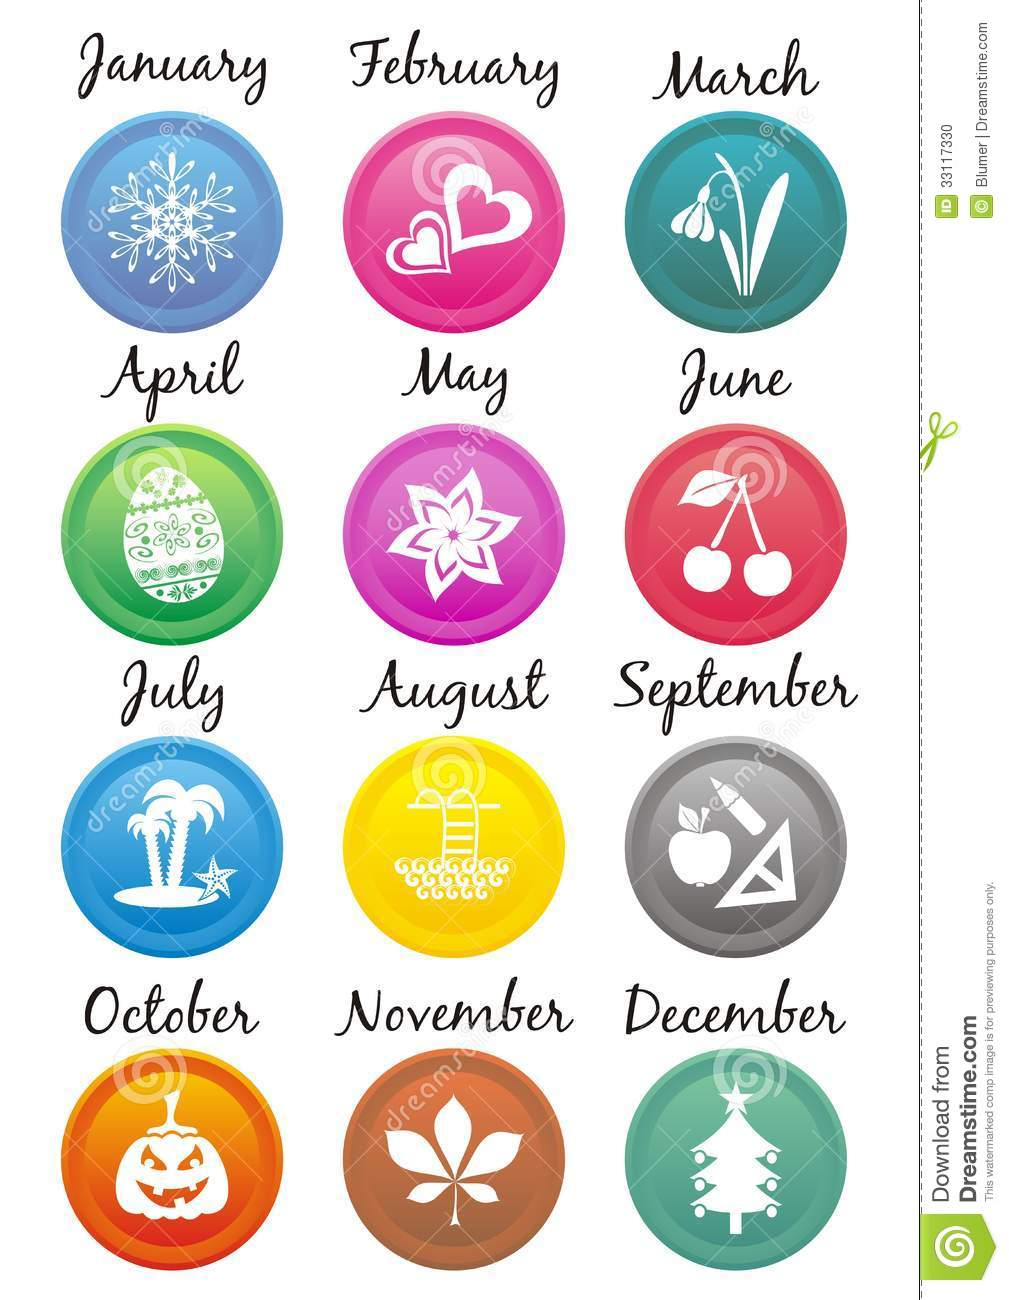 Calendar Icons Stock Vector. Illustration Of Illustration intended for Calendar Date Icon Generator